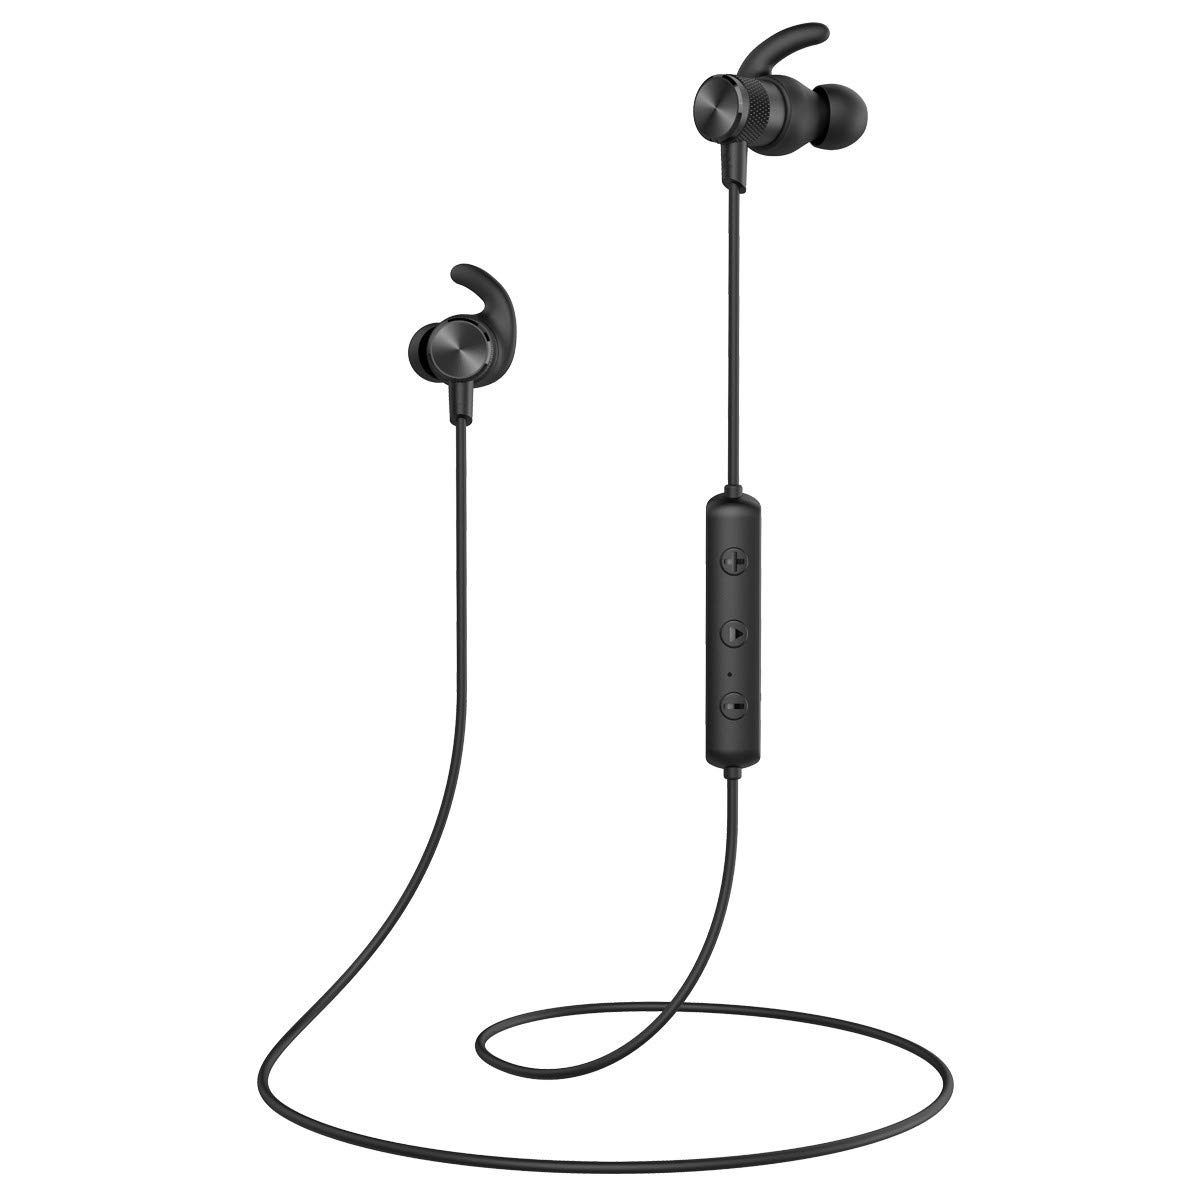 Bluetooth Headphones, Voksun Bluetooth 5.0 Magnetic Wireless IPX6 Earbuds for Sports Workout in-Ear Earphones with Metallic Housing Built-in Mic,Black